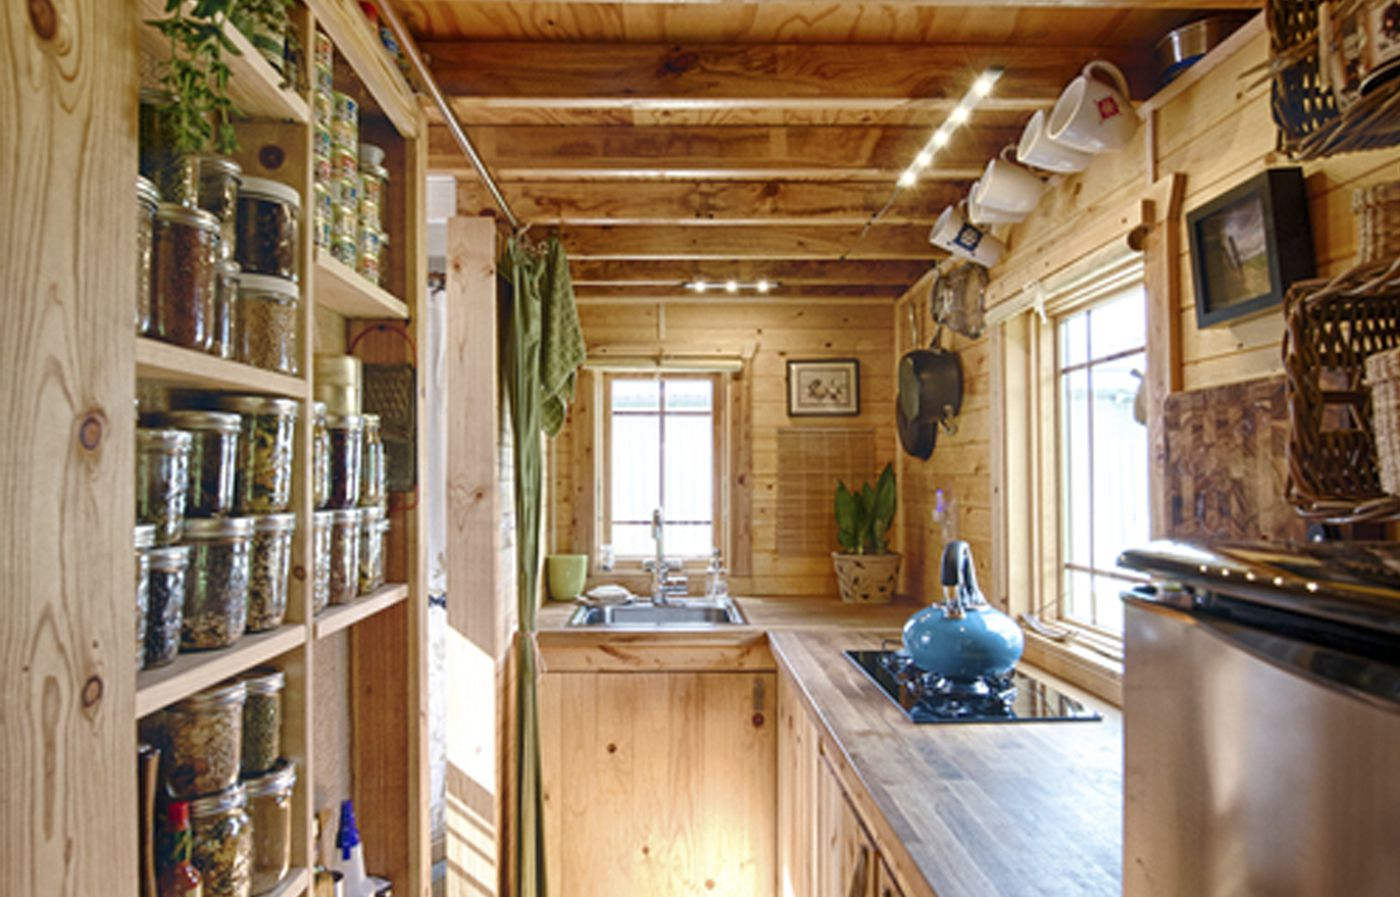 8 Tiny Houses That Have More Storage Than Your House This Old House